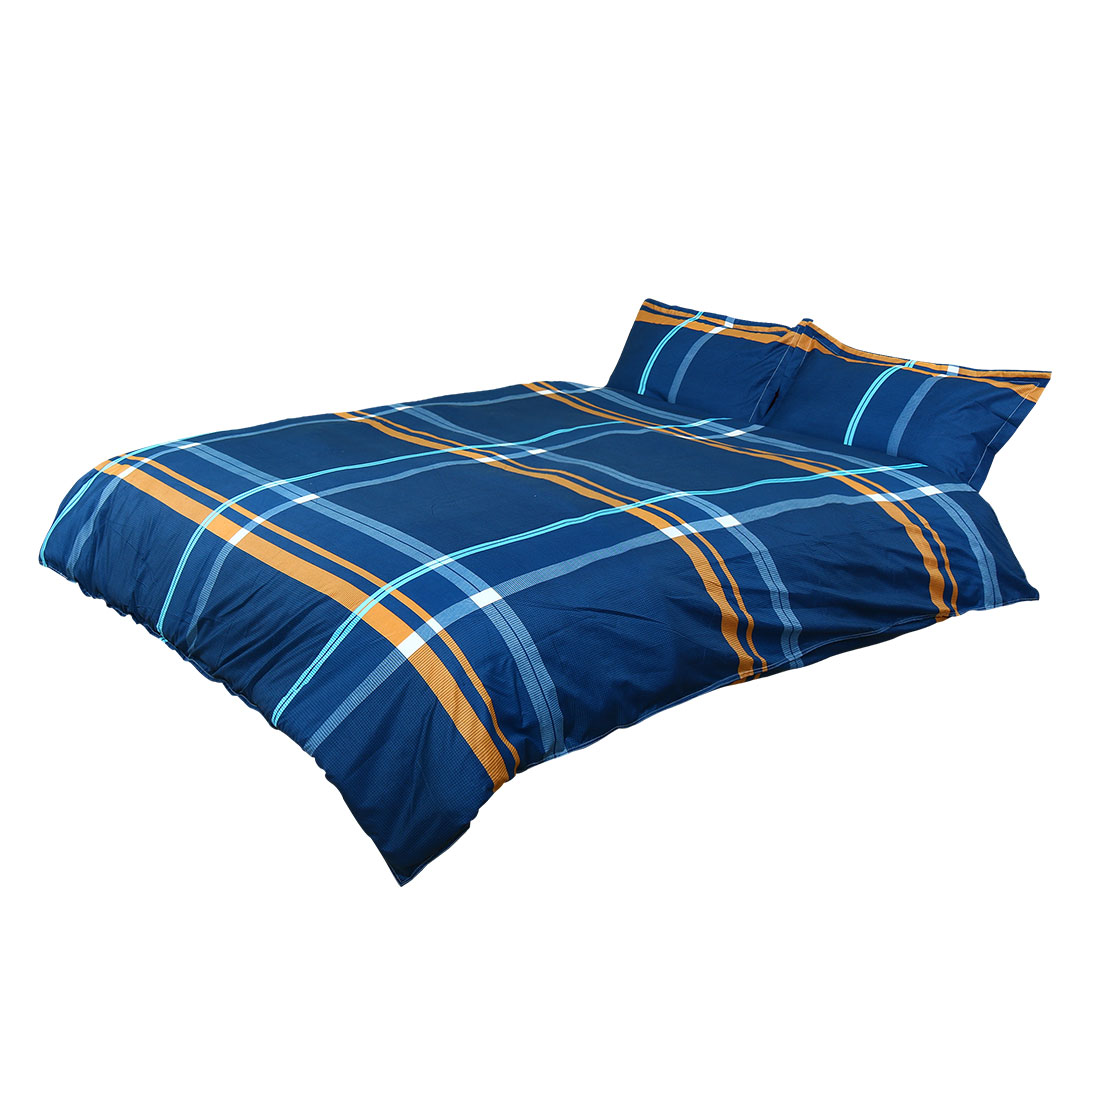 Plaid Pattern Duvet Cover Pillowcase Quilt Cover Bedding Set Super King Blue